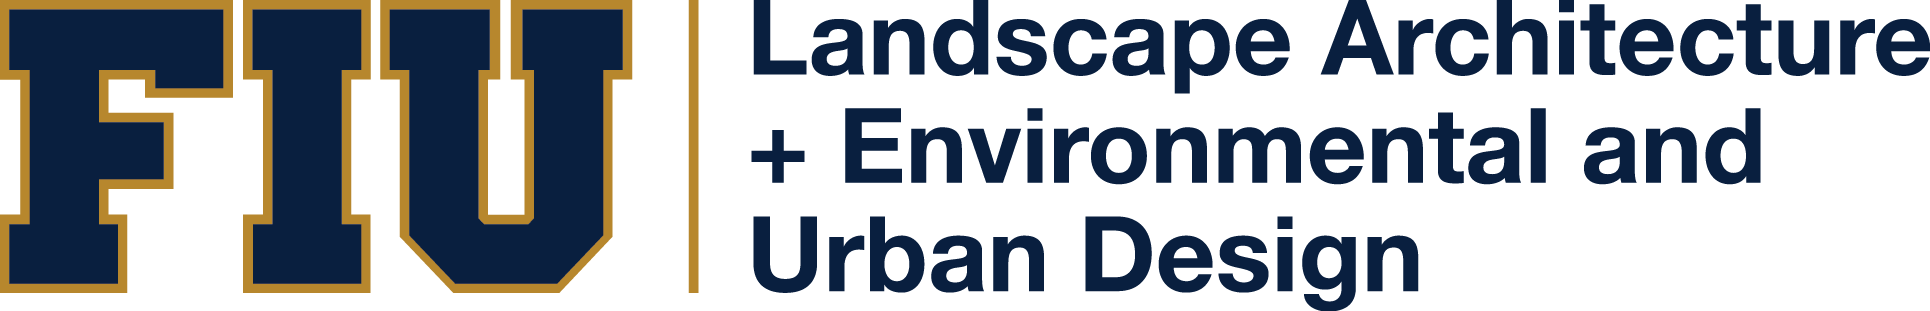 Department of Landscape Architecture Retina Logo